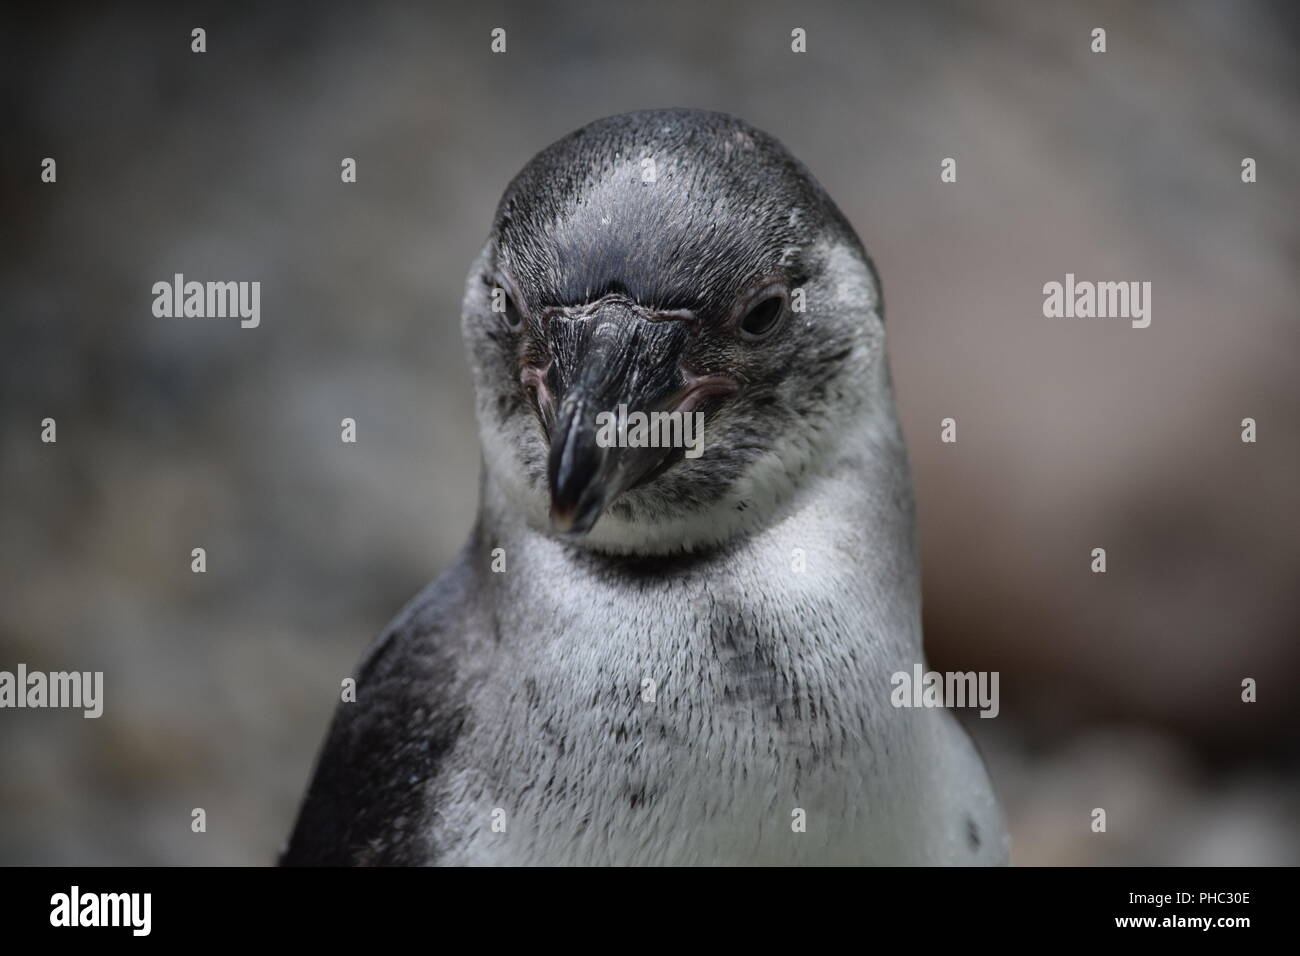 penguin at zoo - Stock Image